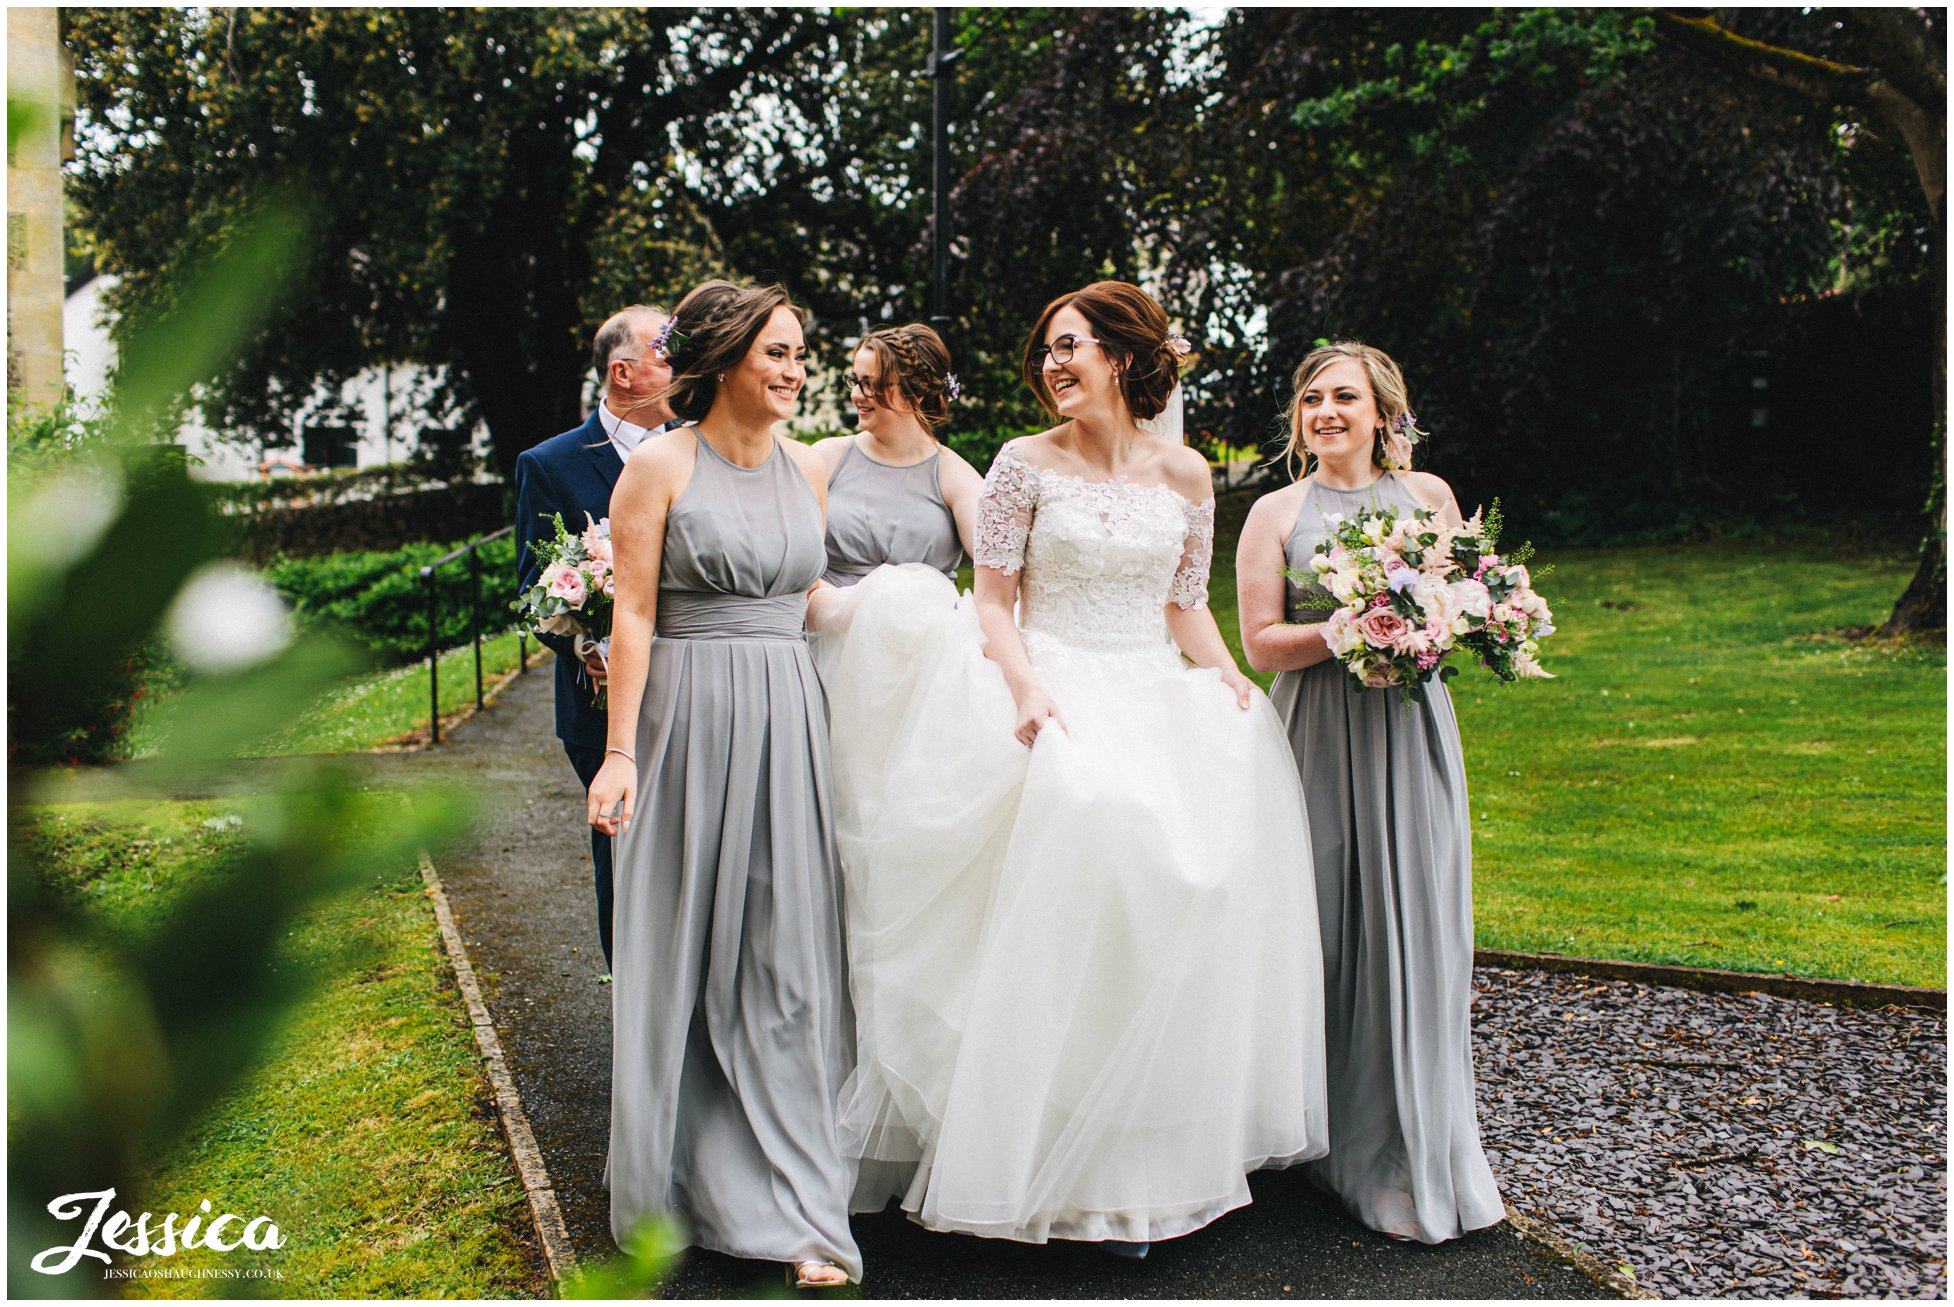 bridesmaids carry the brides dress down the church path